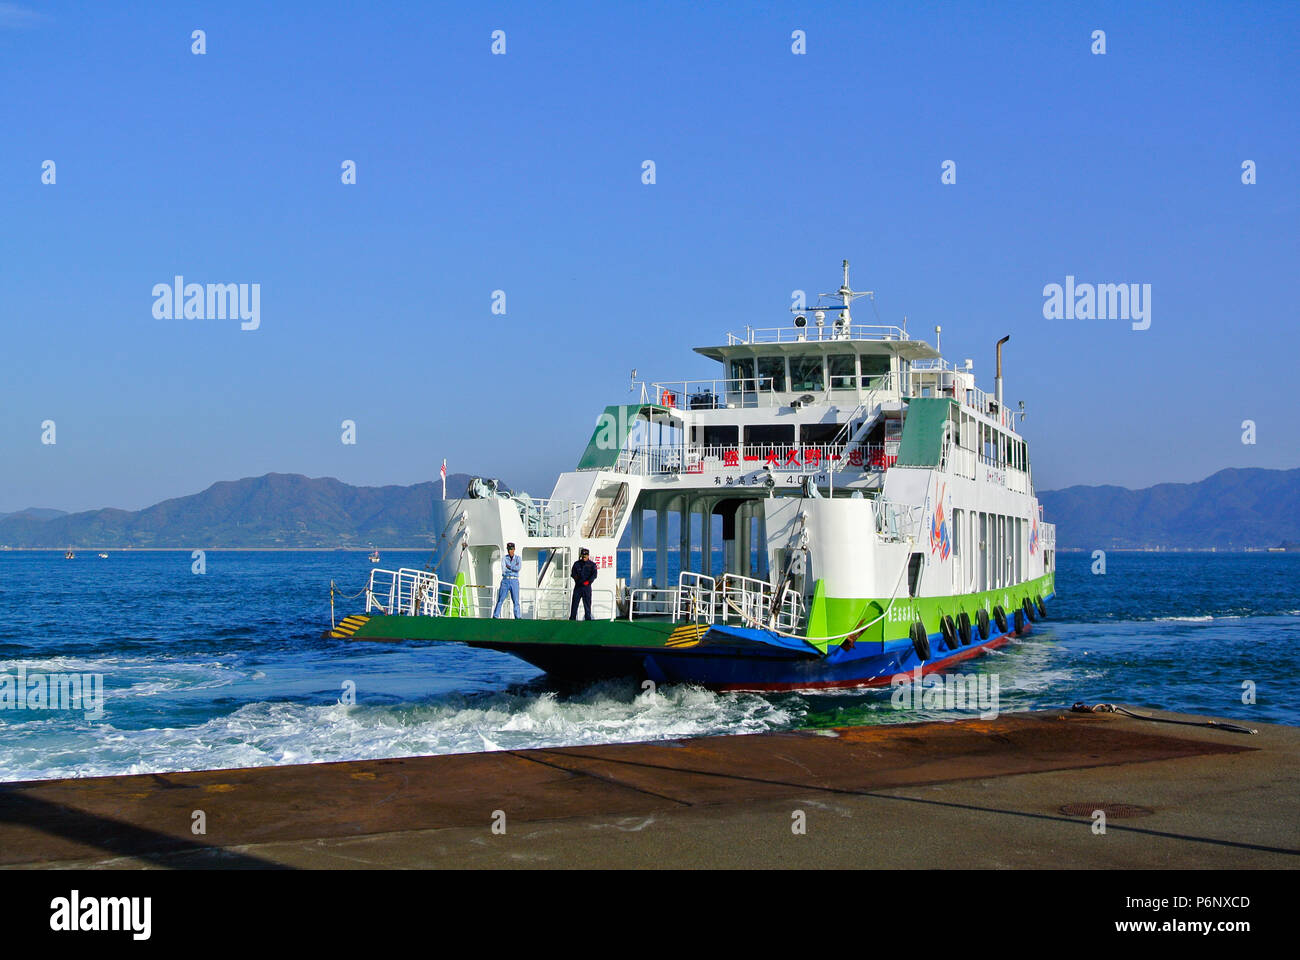 Ferry boat embarking at Setonaikai National Park, Hiroshima, Japan - Stock Image